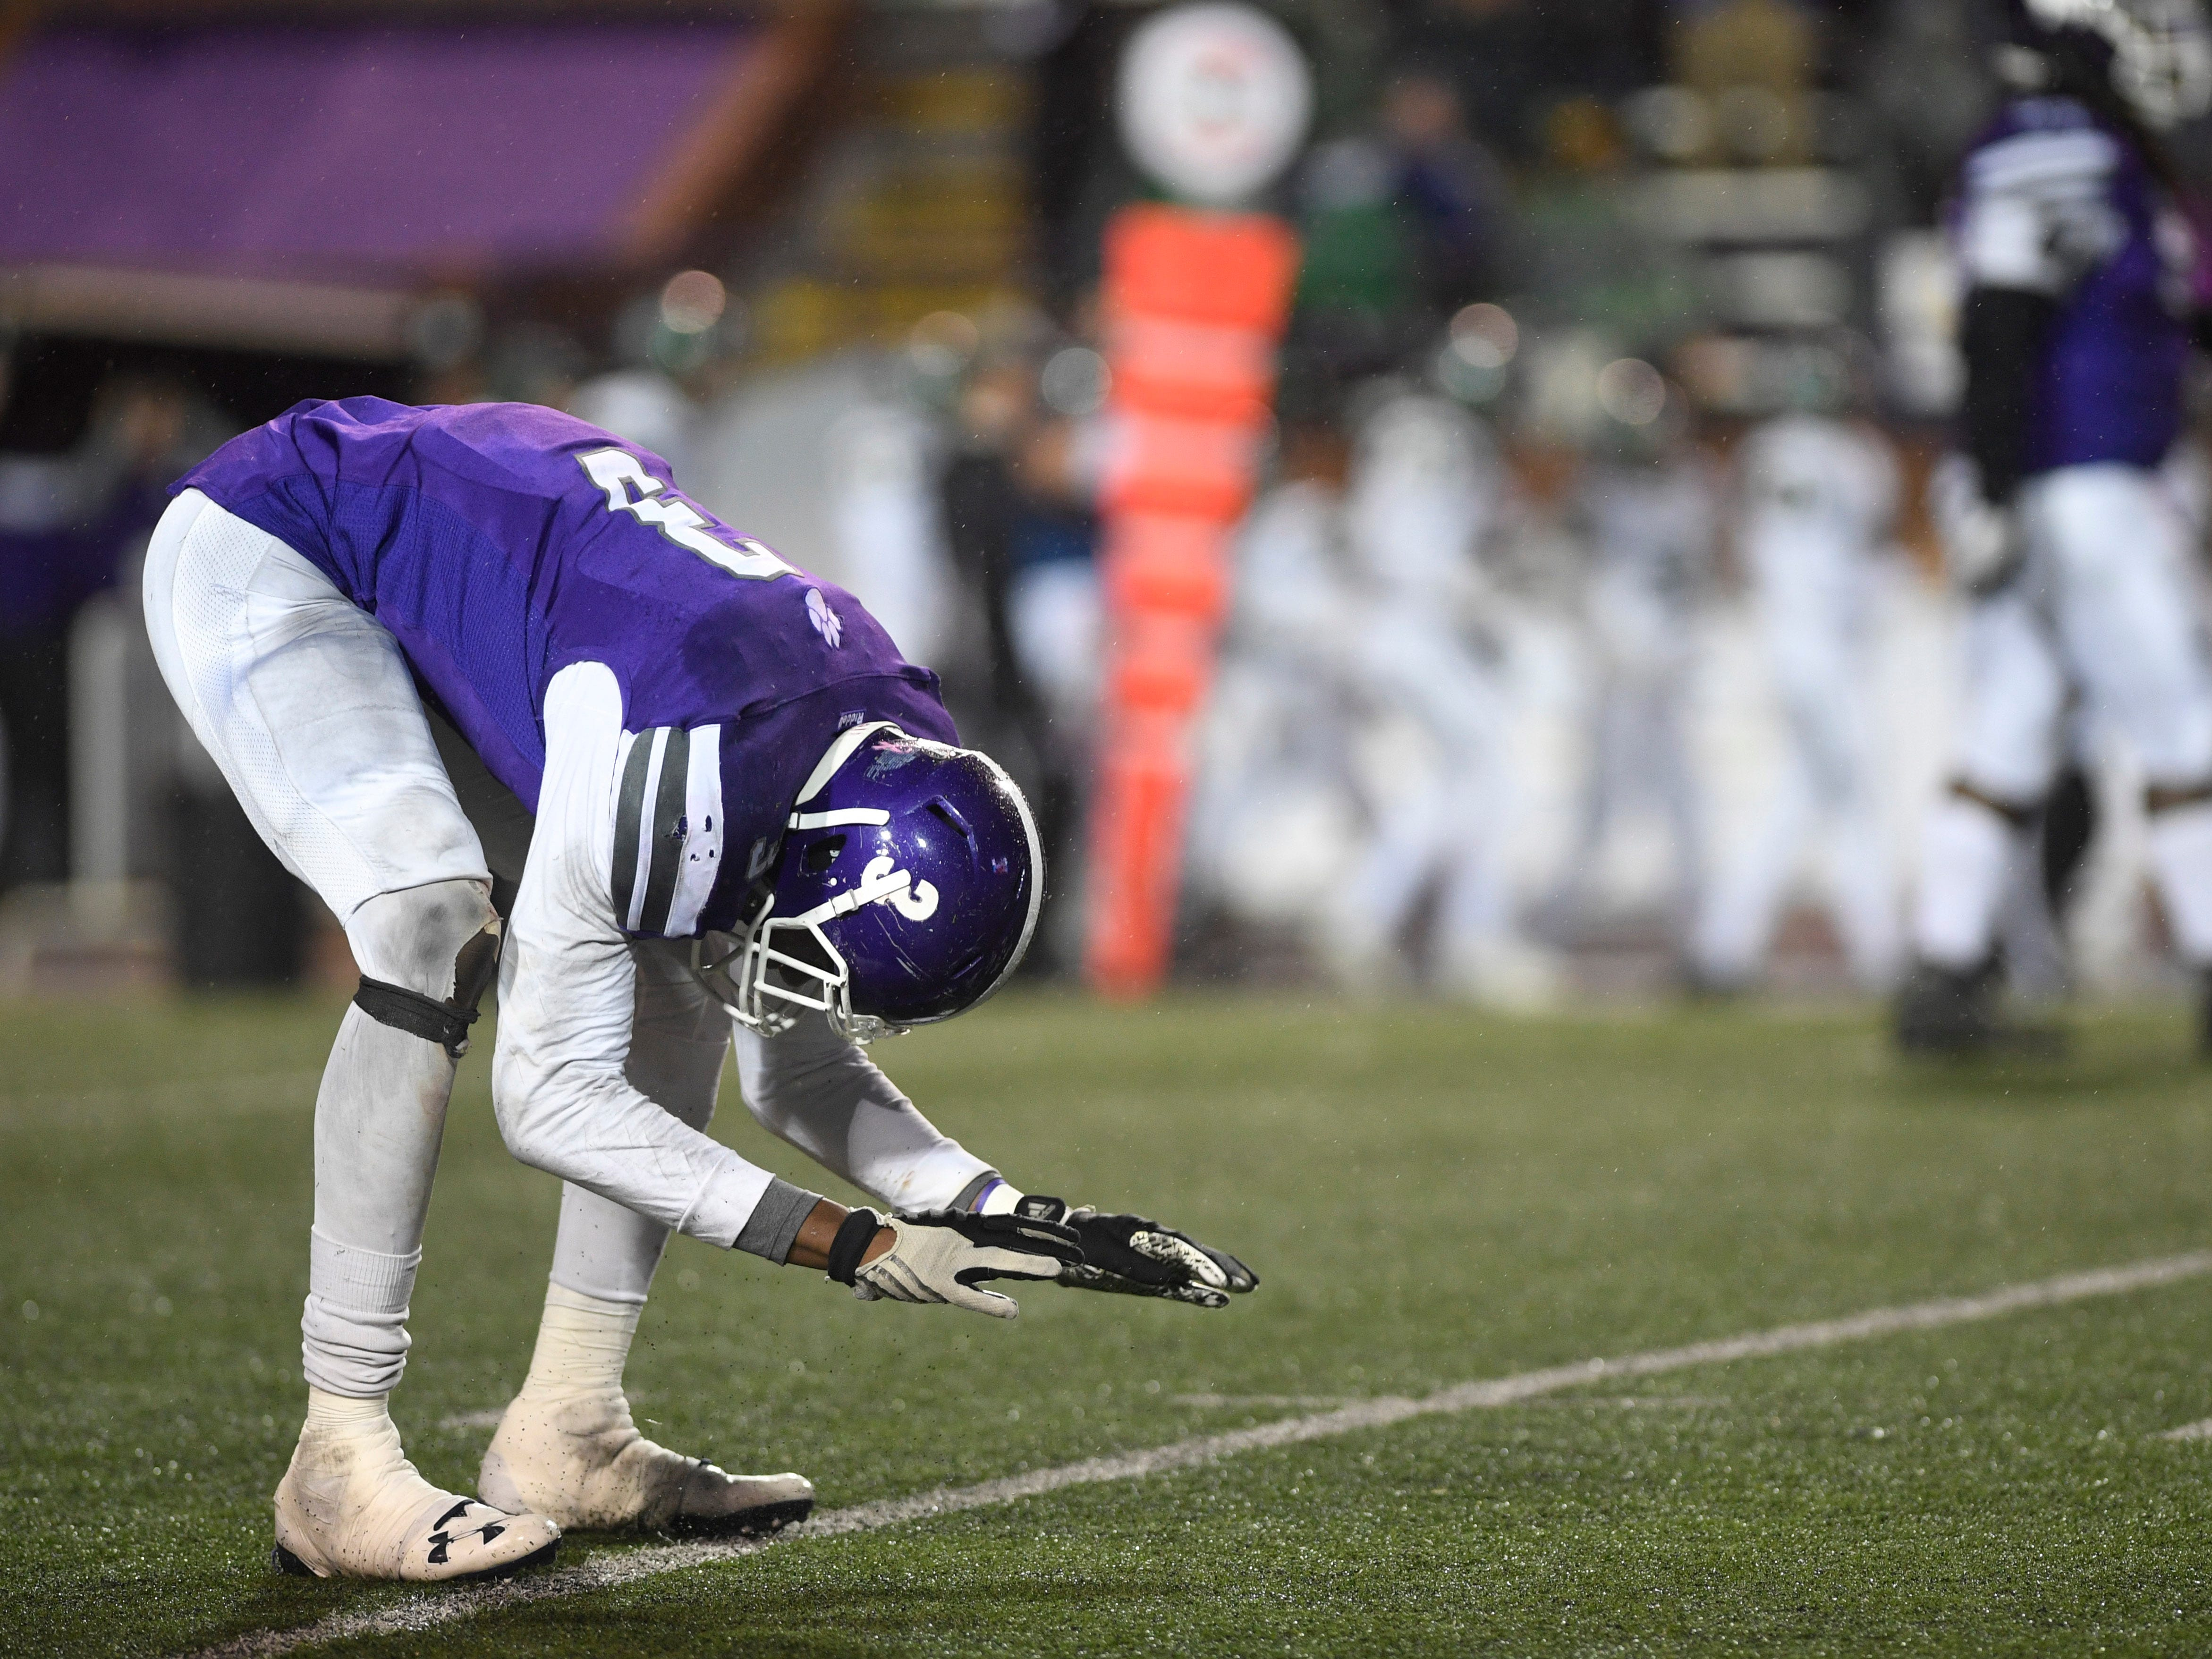 Haywood's  Marquis Pugh (3) throws his arms down in disappointment after a touchdown in the second half during the Class 4A BlueCross Bowl state championship at Tennessee Tech's Tucker Stadium in Cookeville, Tenn., on Thursday, Nov. 29, 2018.